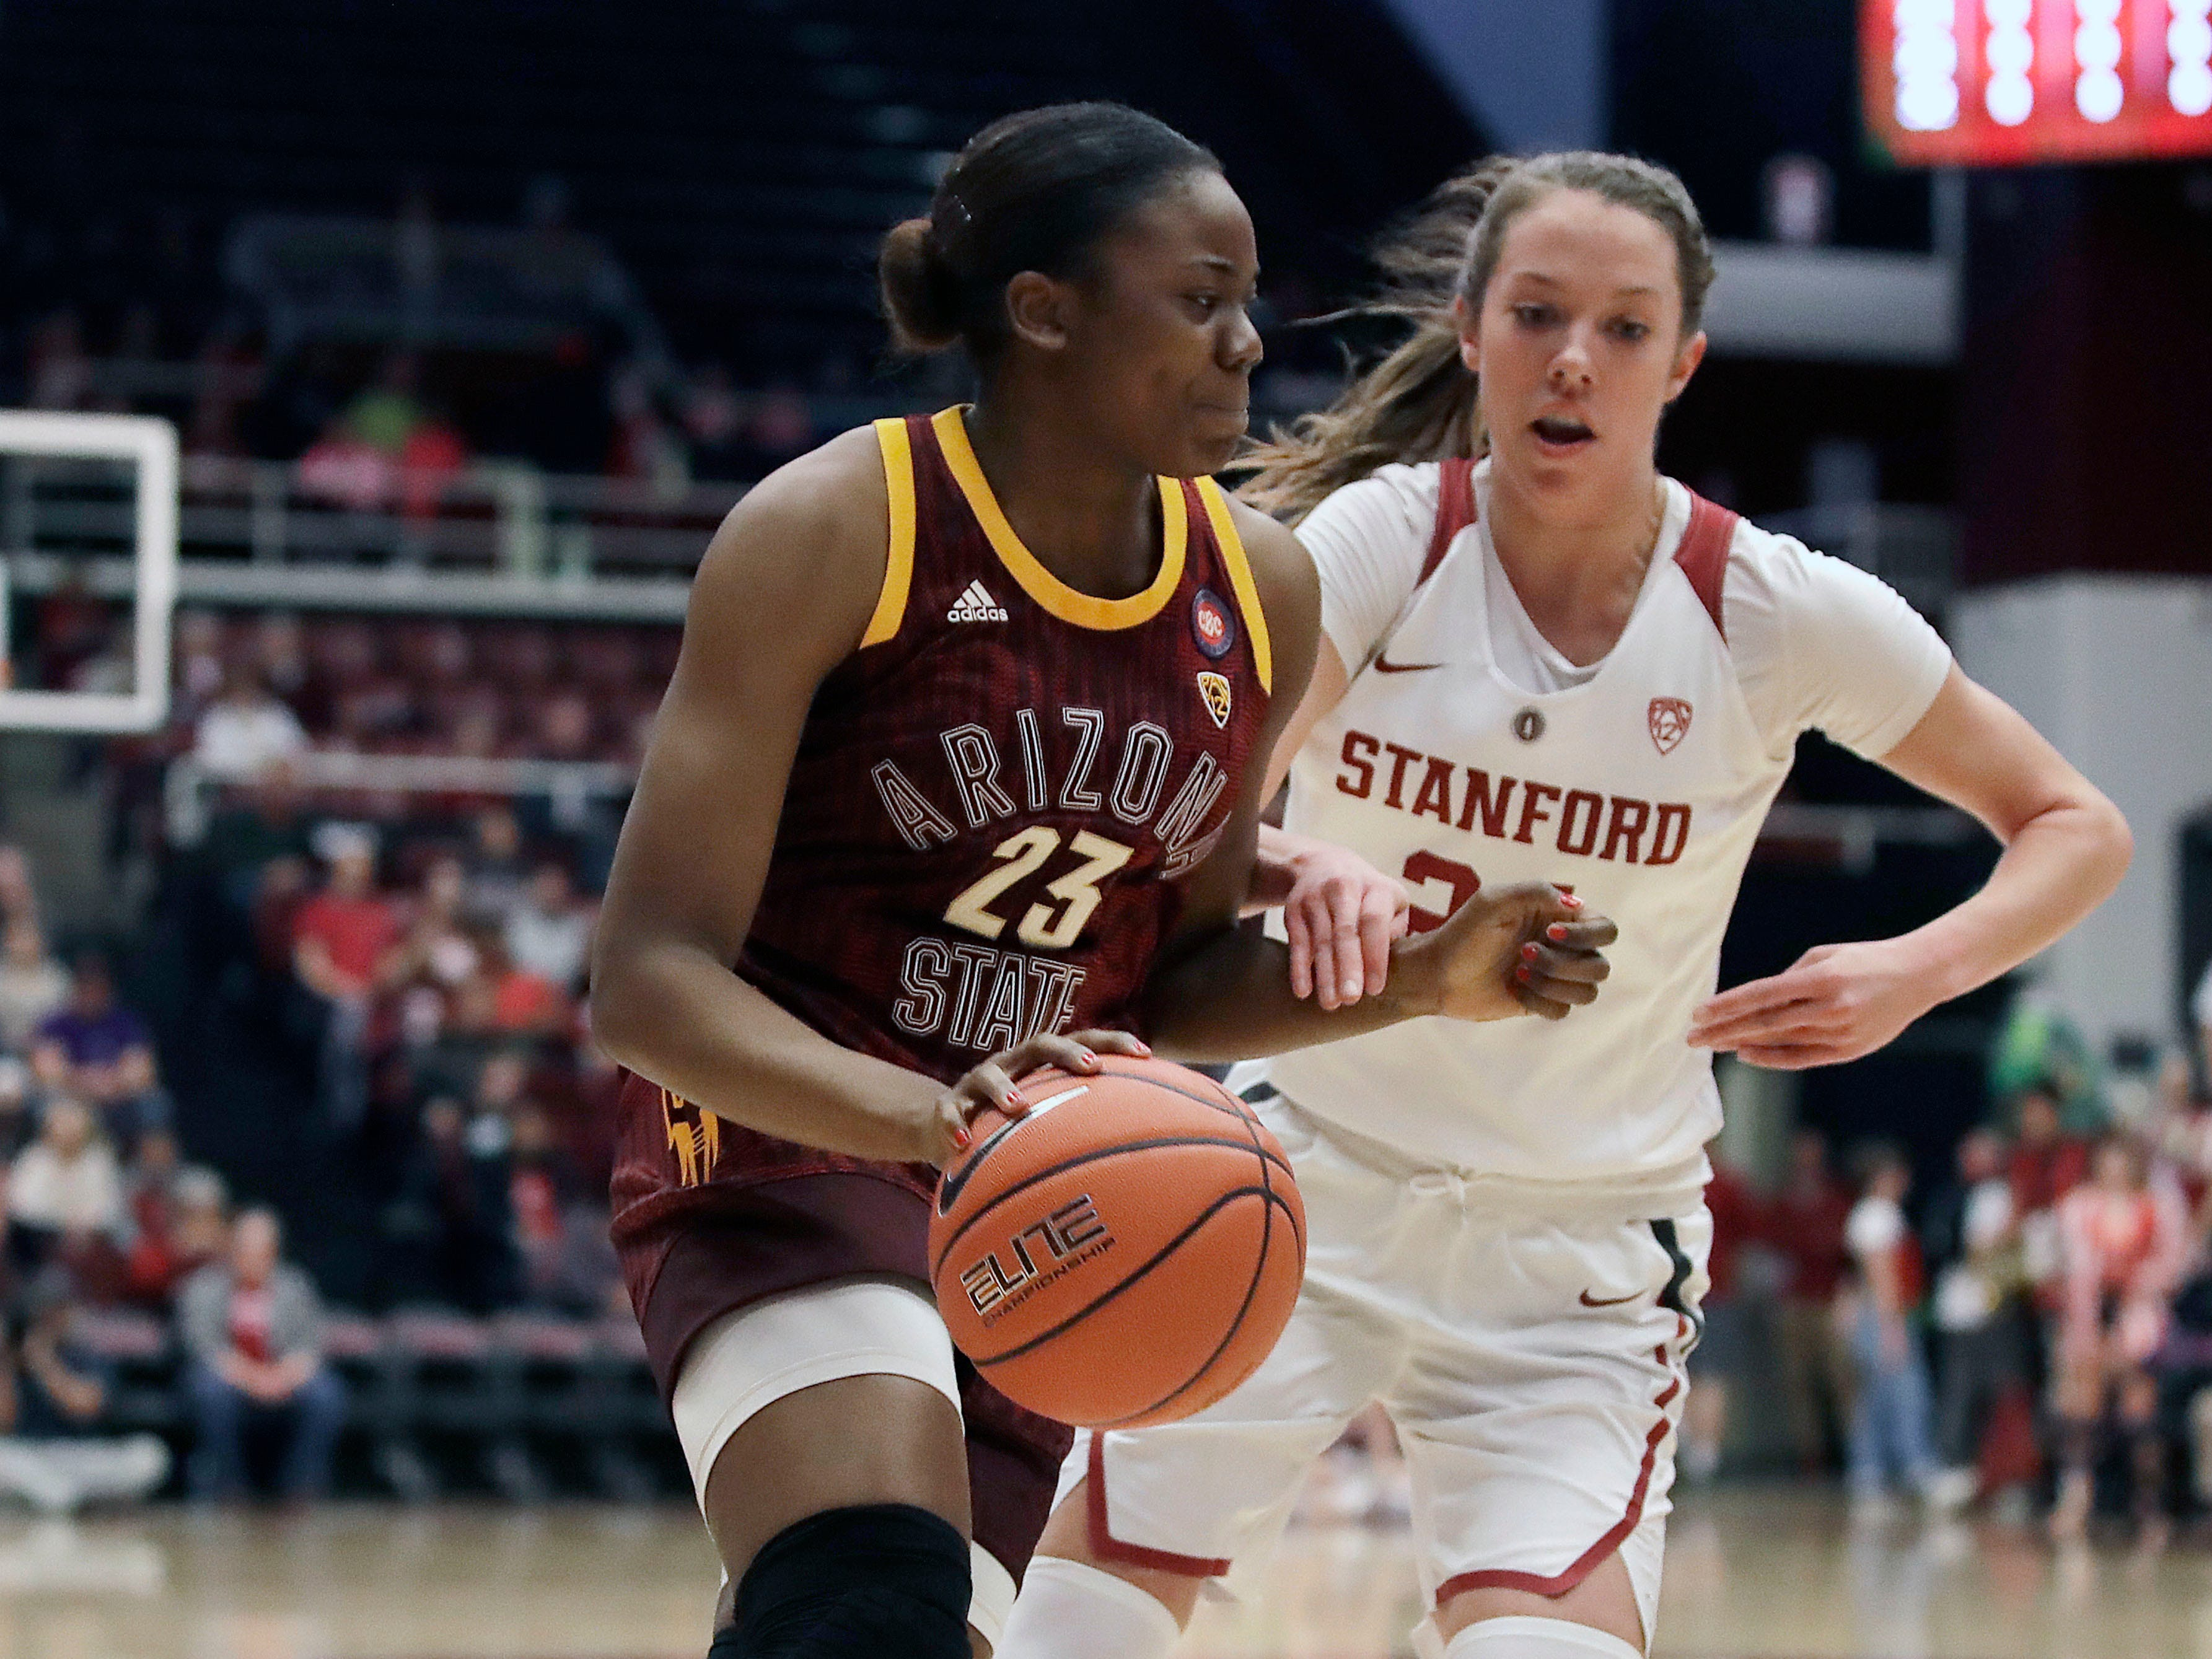 Arizona State's Iris Mbulito, left, drives the ball against Stanford's Lacie Hull during the first half of an NCAA college basketball game Sunday, Feb. 24, 2019, in Stanford, Calif.